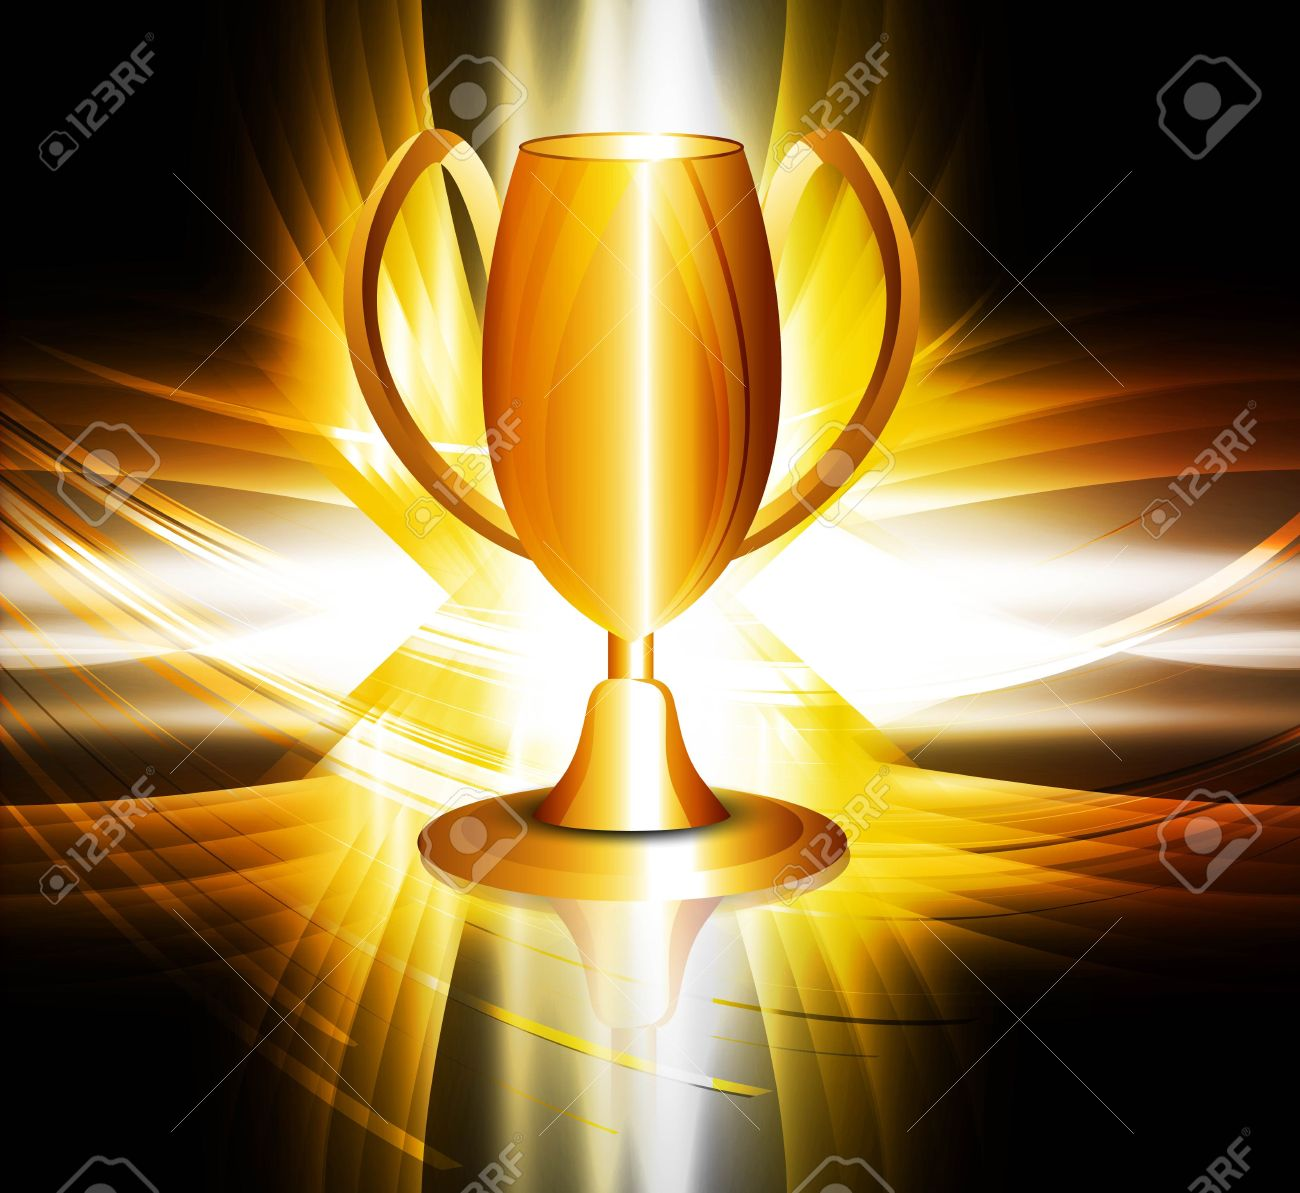 Abstract Shiny Golden Trophy Colorful Vector Design Stock